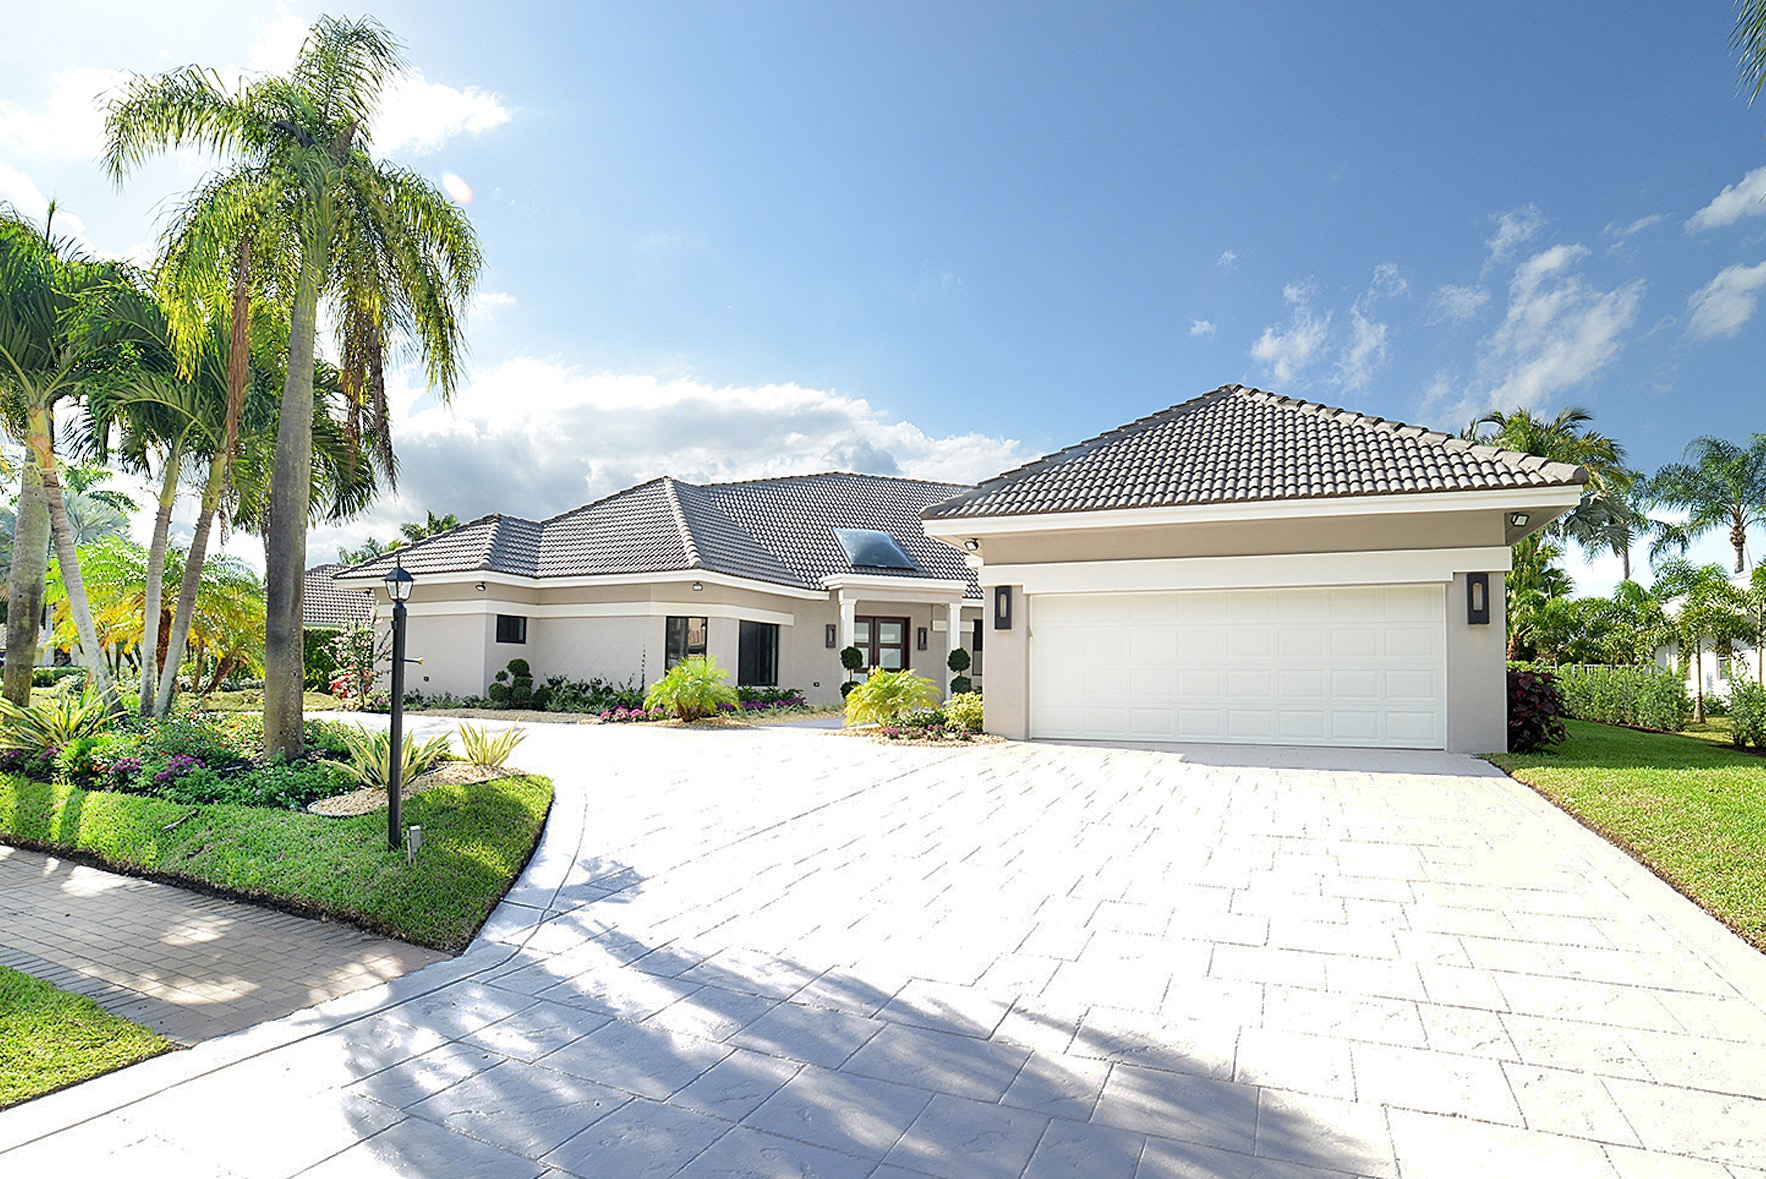 mag real estate & development construction general contractor builder renovation south florida boca raton new custom luxury home for sale interior design st. andrews country club 7026 ayrshire lane 1.jpg